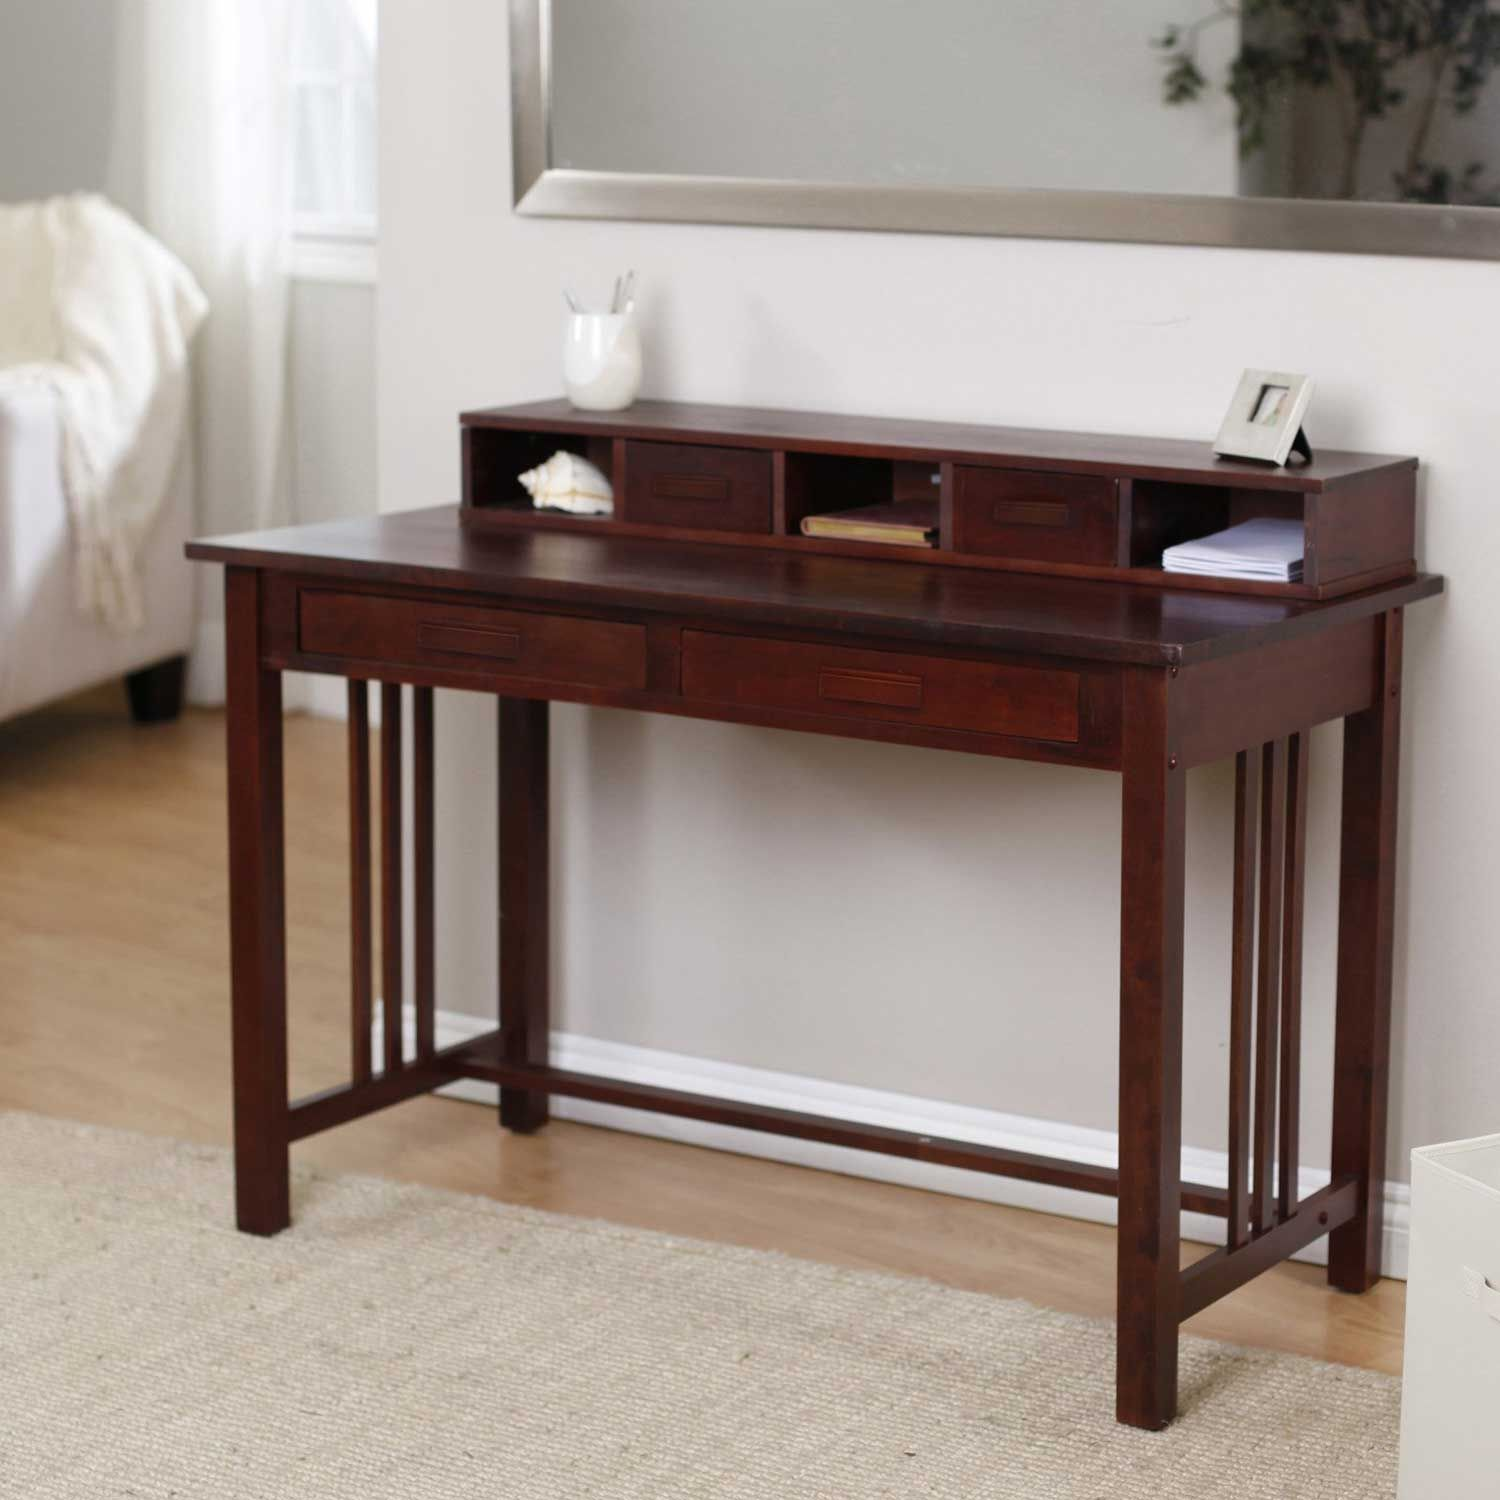 Cheap Writing Desks For Home Office Furniture Office Furniture Desks For Small Spaces Writing Desk With Drawers Small Writing Desk